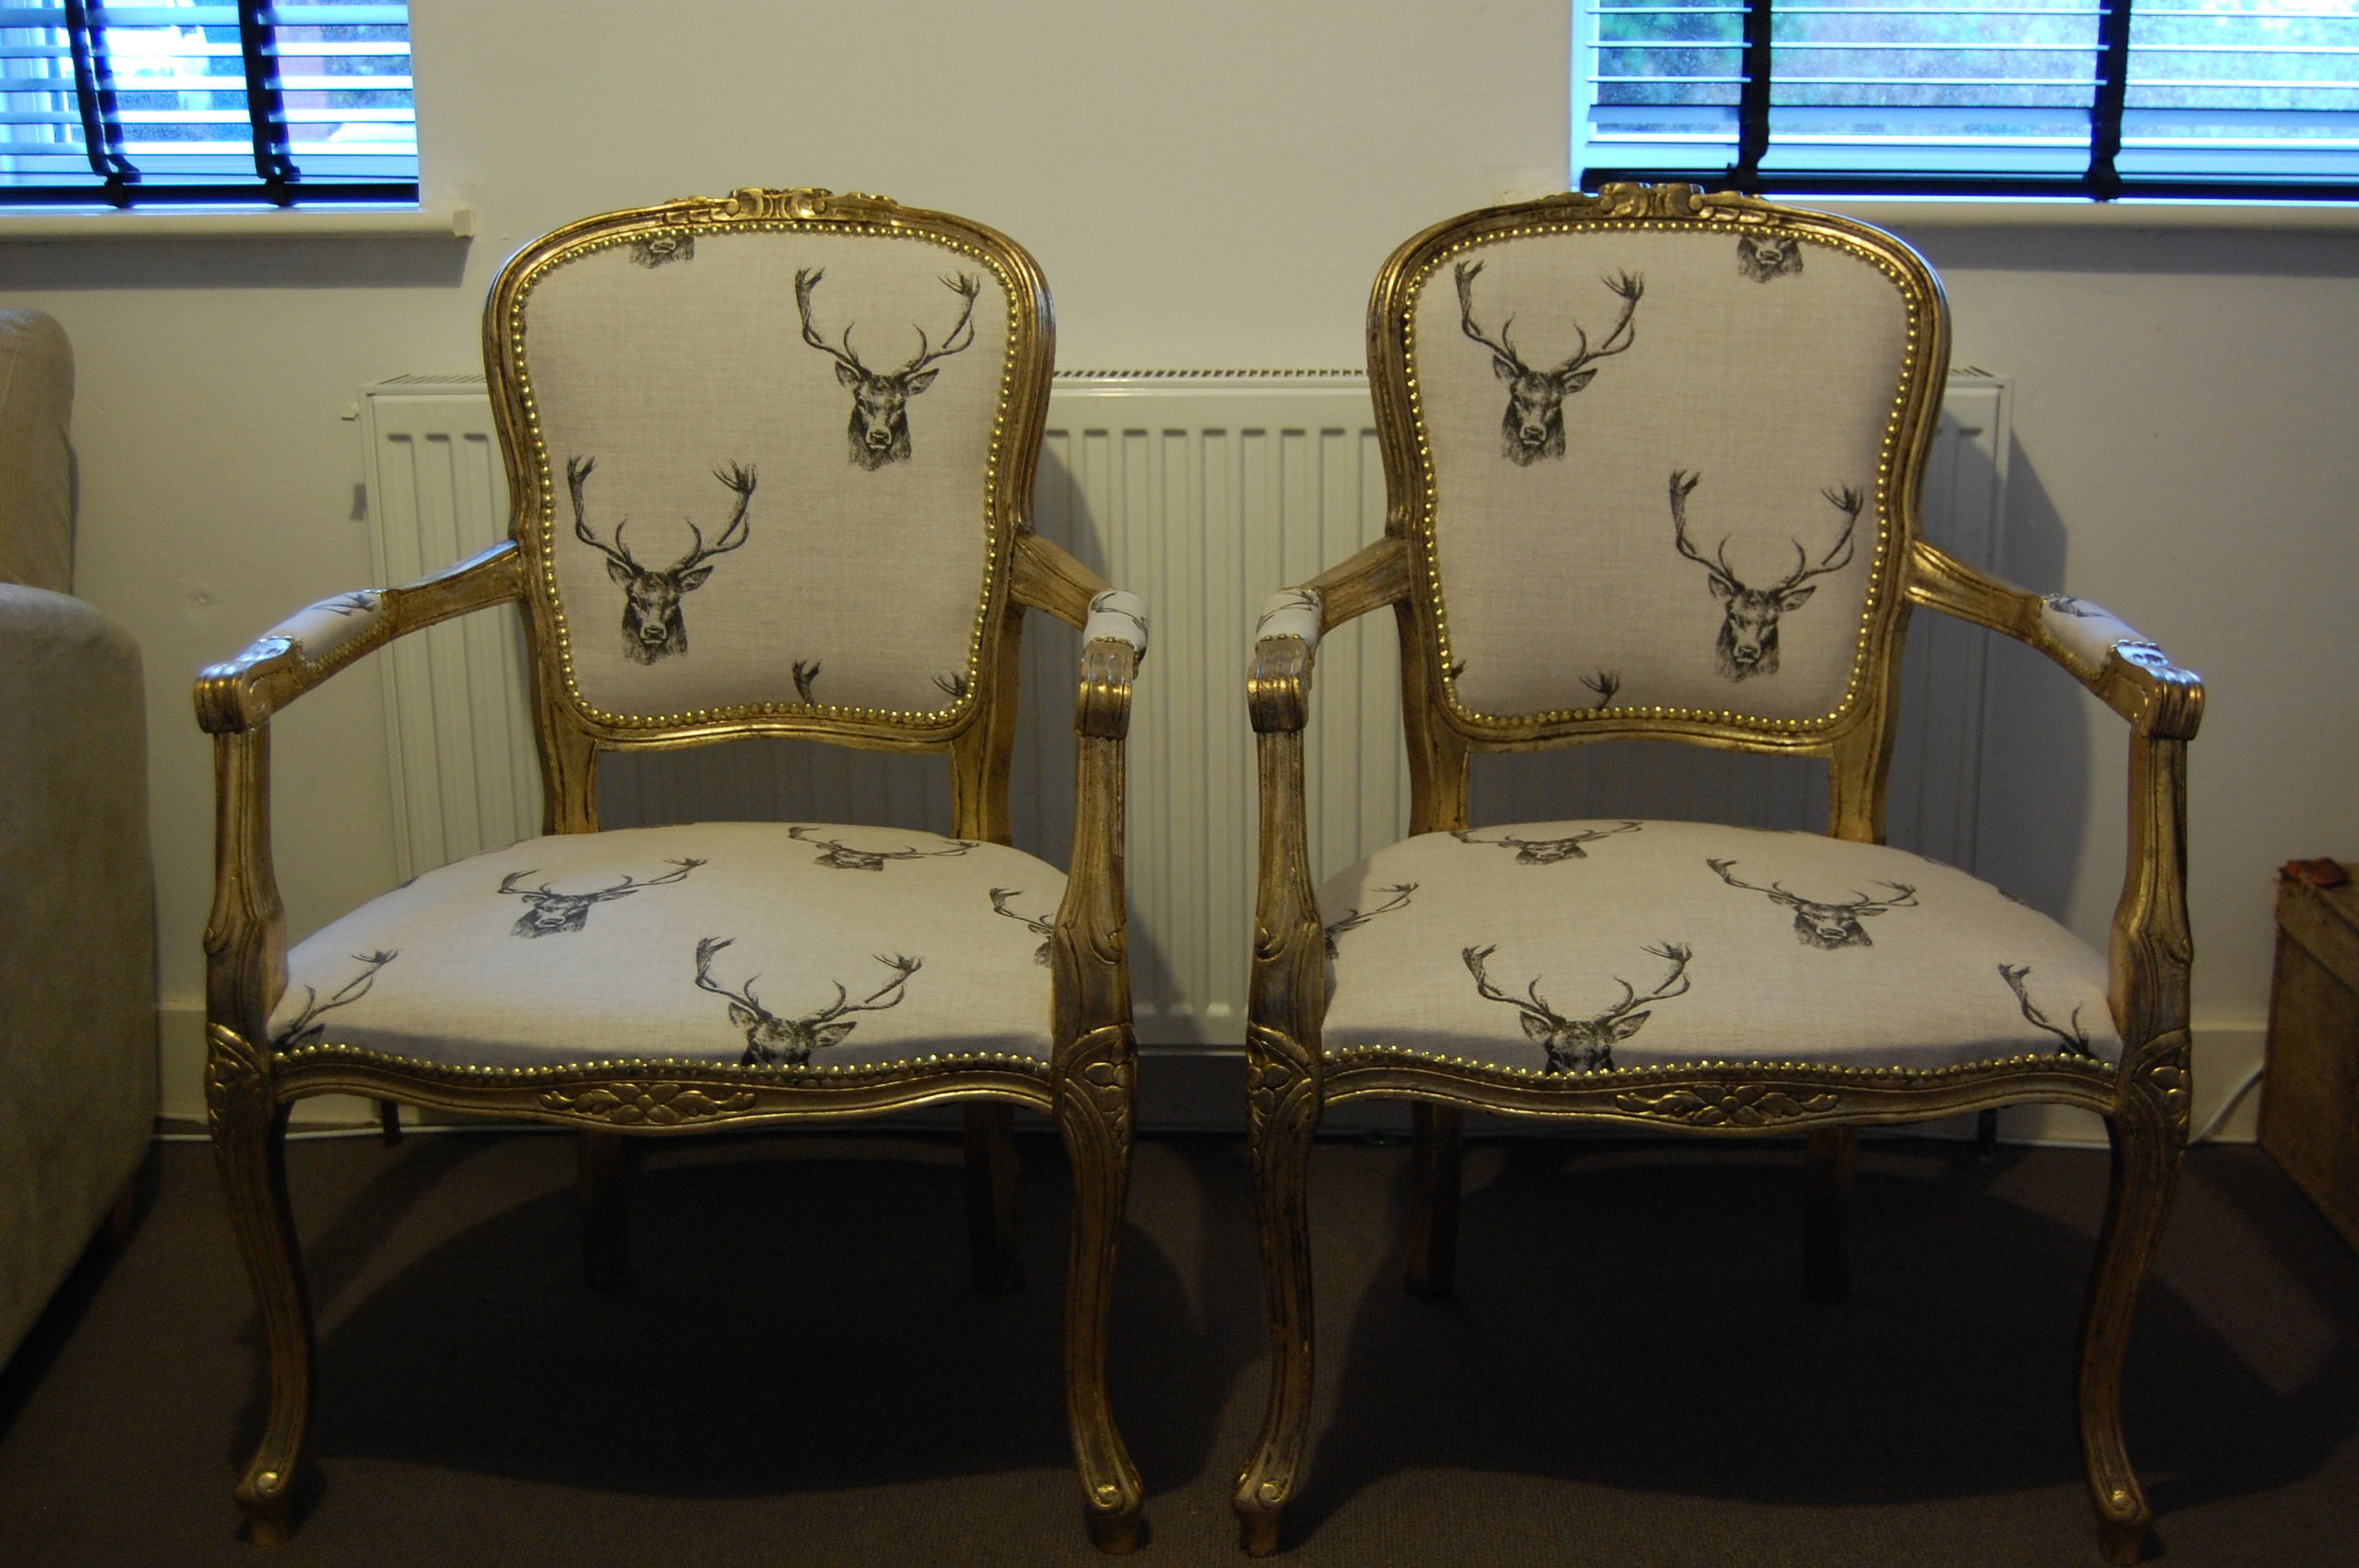 Grist & Twine Upholstery: Pair of reproduction salon chairs reupholstered in stag print fabric